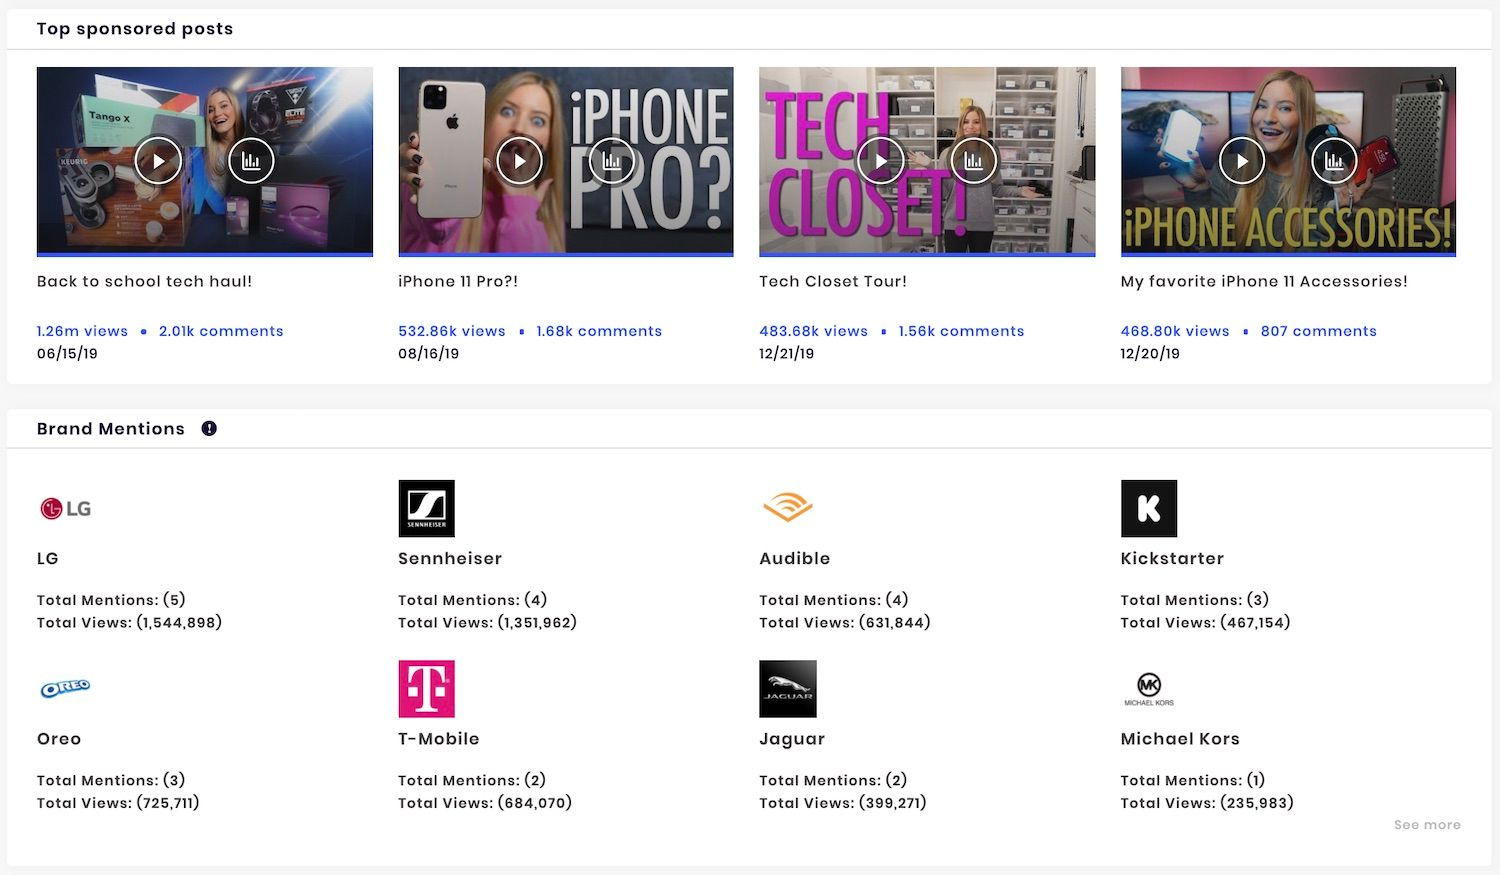 Top sponsored posts and brand mentions of iJustine. (Credit to: SocialBook)